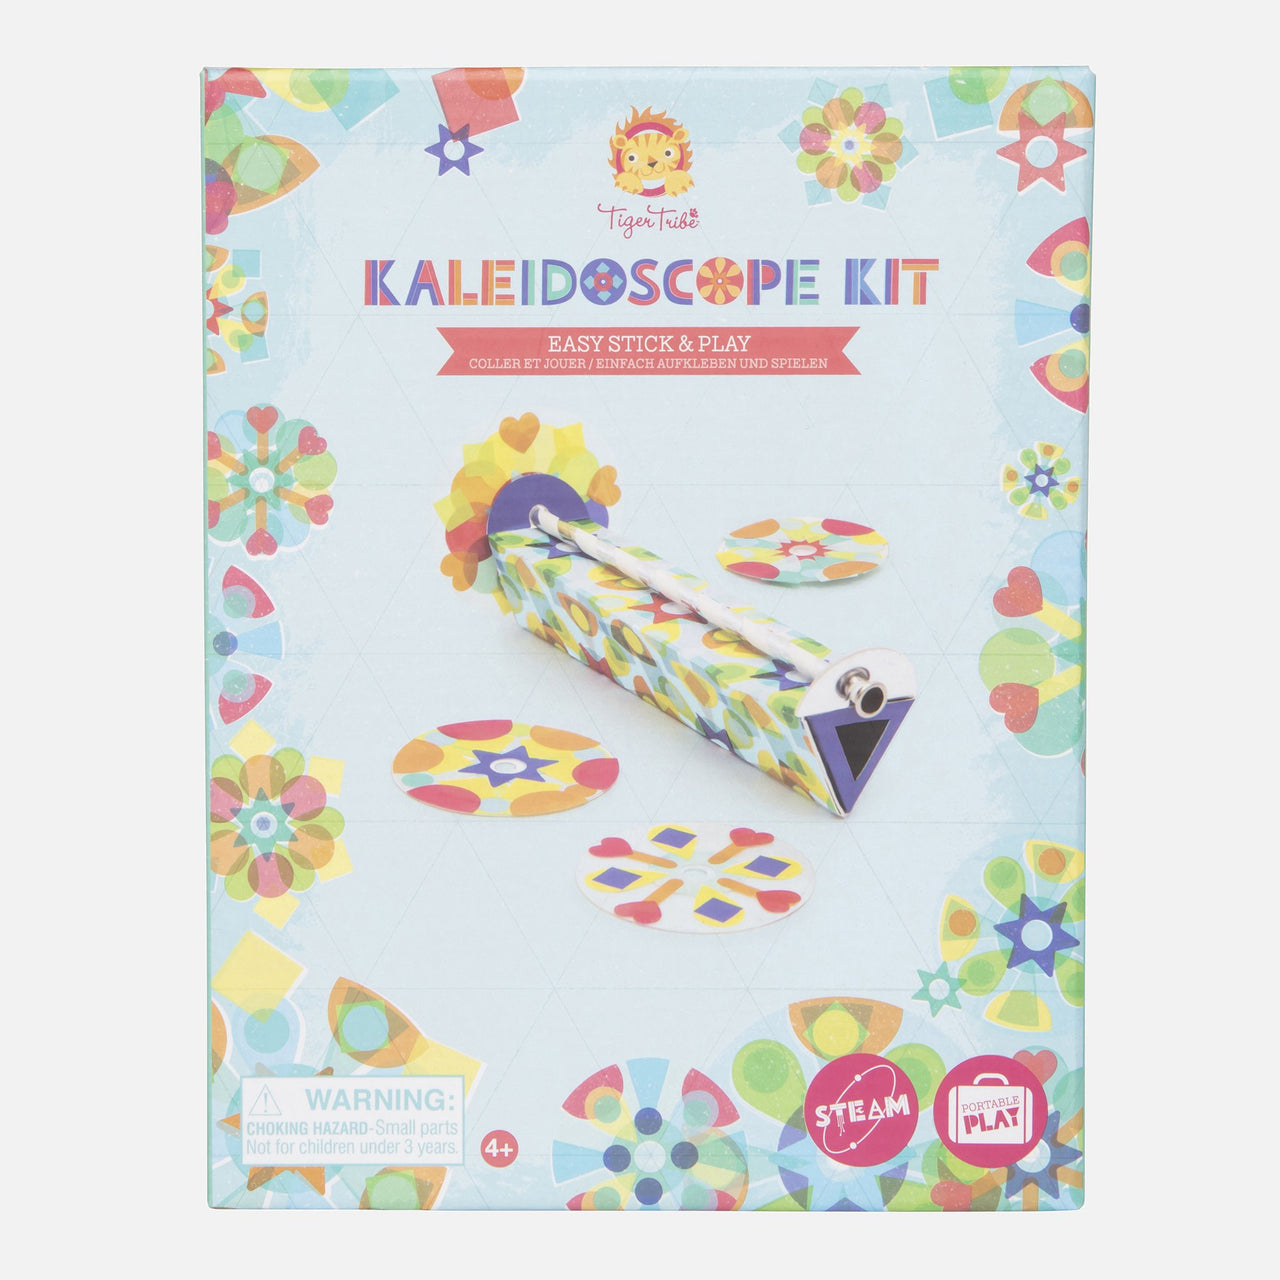 Kaleidoscope Kit - Easy Stick & Play